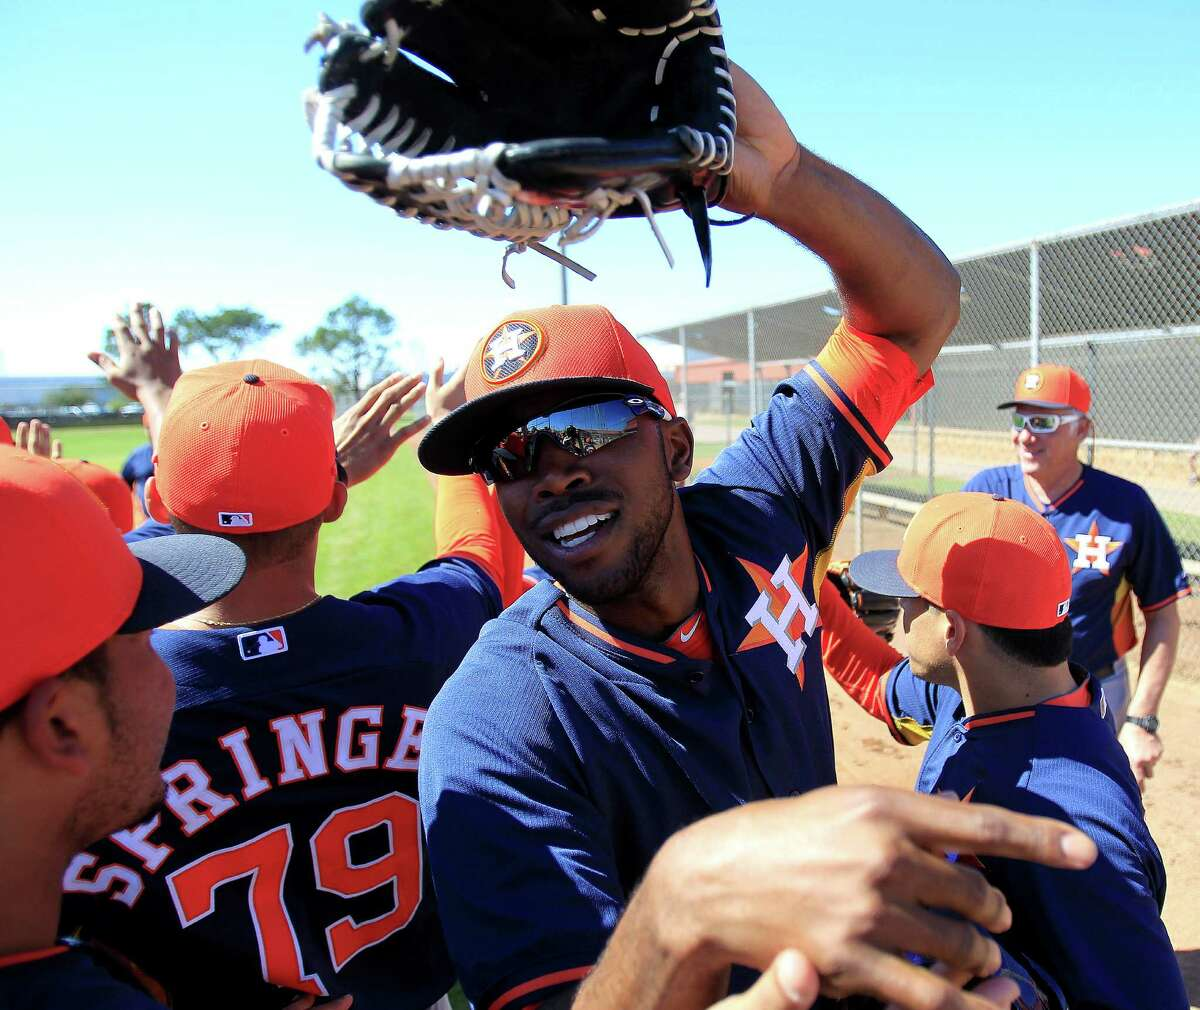 Dexter Fowler, center, has fit right in with his new teammates and looks forward to validating the Astros' trade for him.